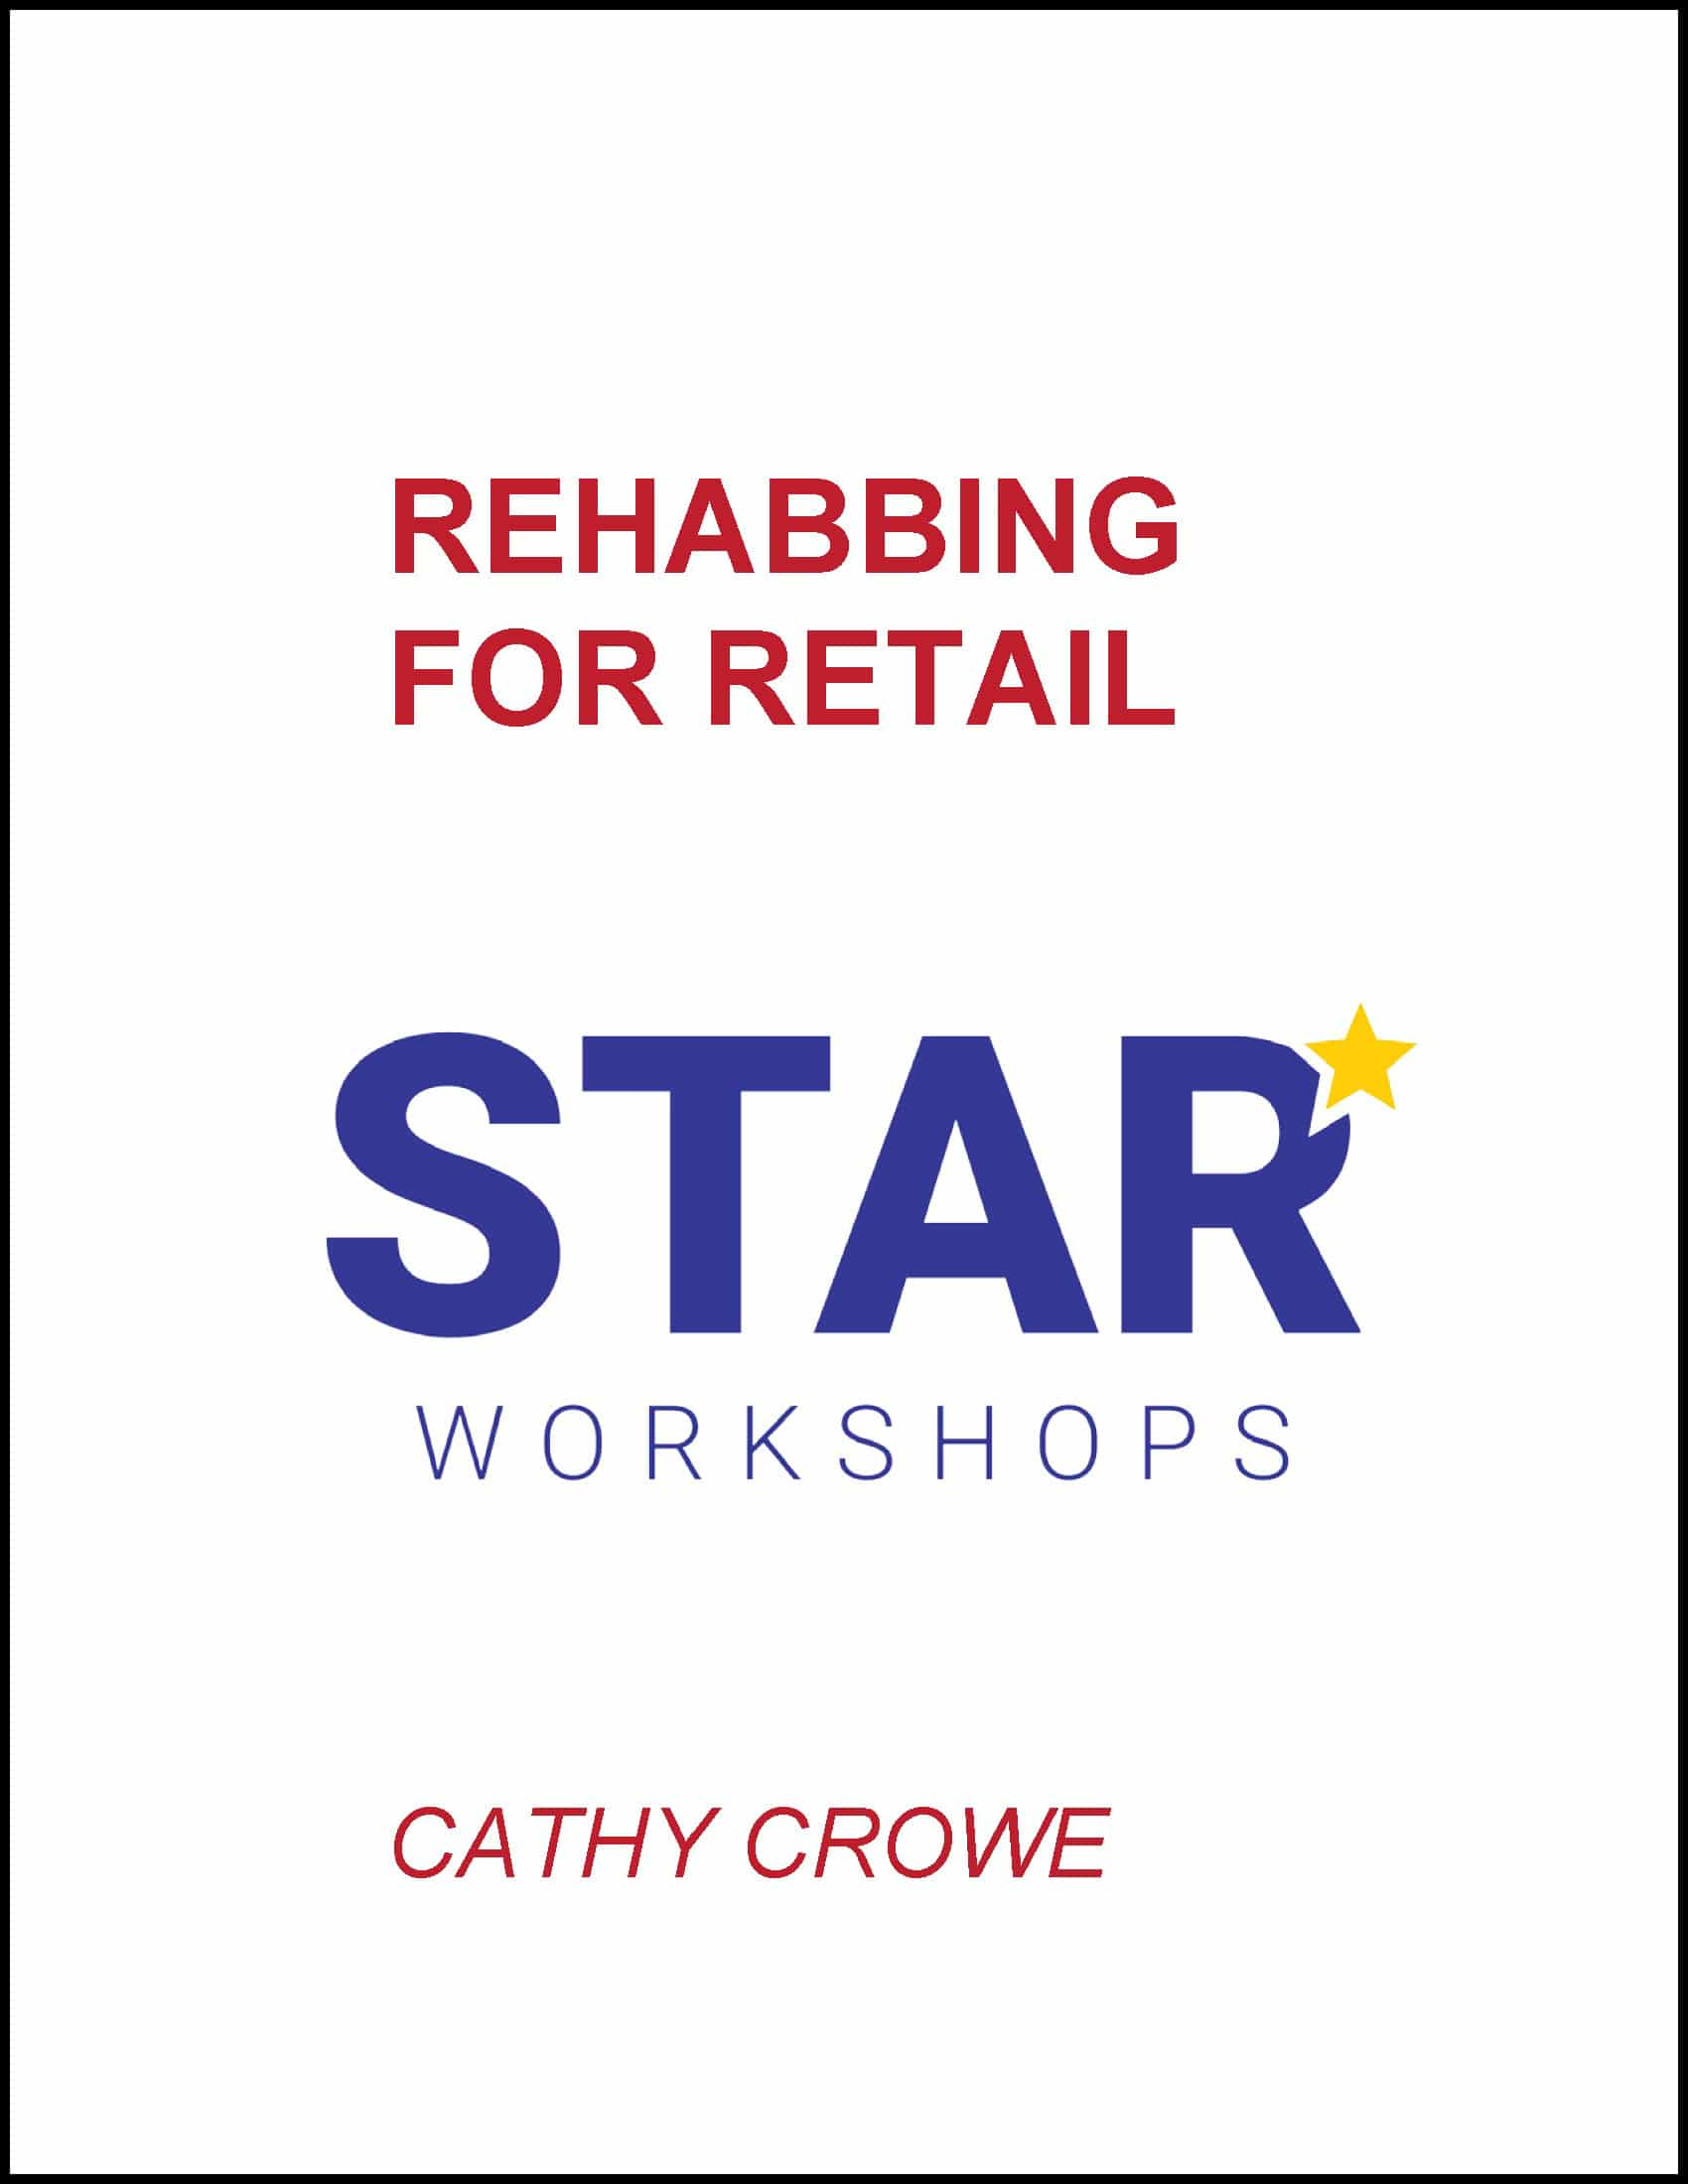 Cathy Crowe - Rehabbing For Retail